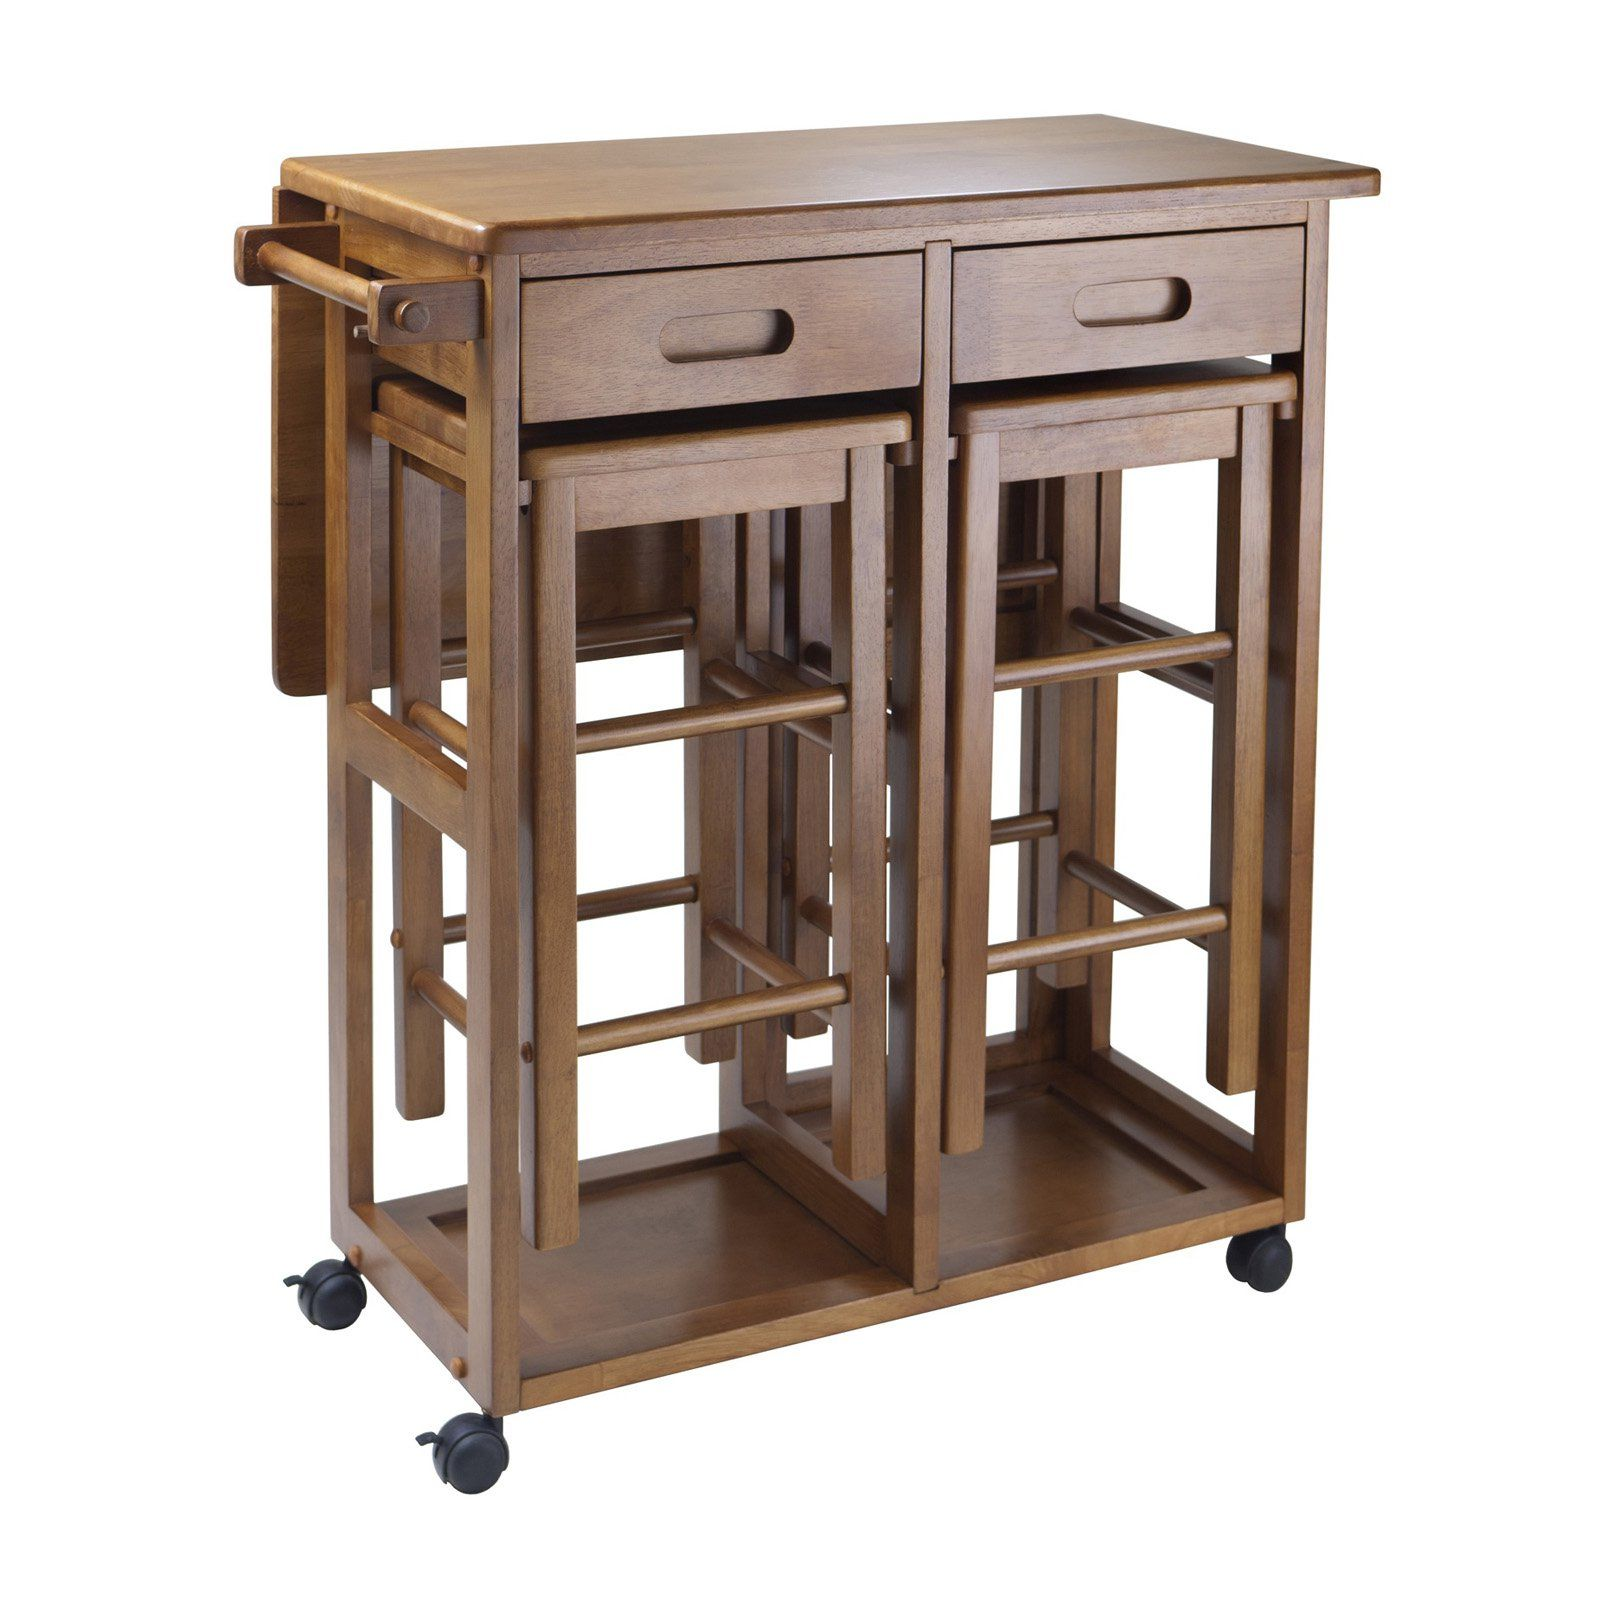 Mesmerizing microwave cart ikea for kitchen furniture design with microwave cart with storage ikea